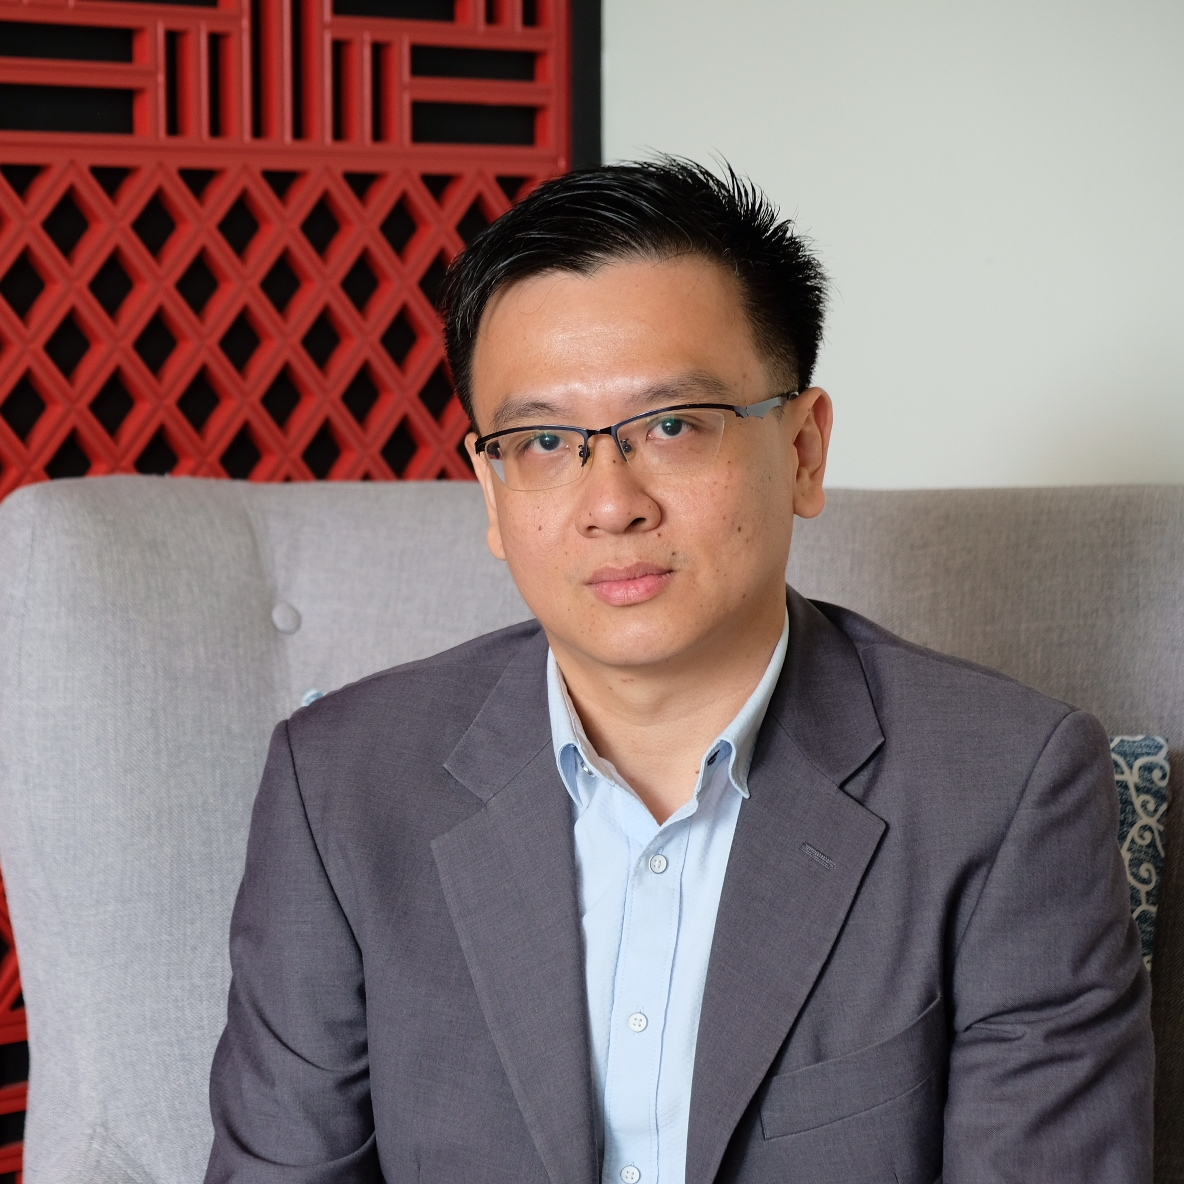 Lim Boon Chai    Co-Managing Director - to70 Aviation Consulting (S) Pte Ltd    Aviation Advisor - Reapra Aviation Partners Pte Ltd   Boon Chai has more than 15 years of experience in various aspects of civil aviation, including airport infrastructure planning and project management, investments, policy, safety risk management and compliance, with broad exposure across international markets. Prior to to70, he worked with the Civil Aviation Authority of Singapore as an airfield project engineer and planner in Changi Airport. He later joined Changi Airport International where he was responsible for investments, business and partnership development. In addition to his corporate responsibilities at to70, Boon Chai consults in airport business strategy, safety management and compliance. He has a Bachelor Degree in Civil Engineering, Post-Graduate Diploma in Airport Engineering and an MBA with real estate specialisation from NUS Business School. He is also a qualified lead auditor.